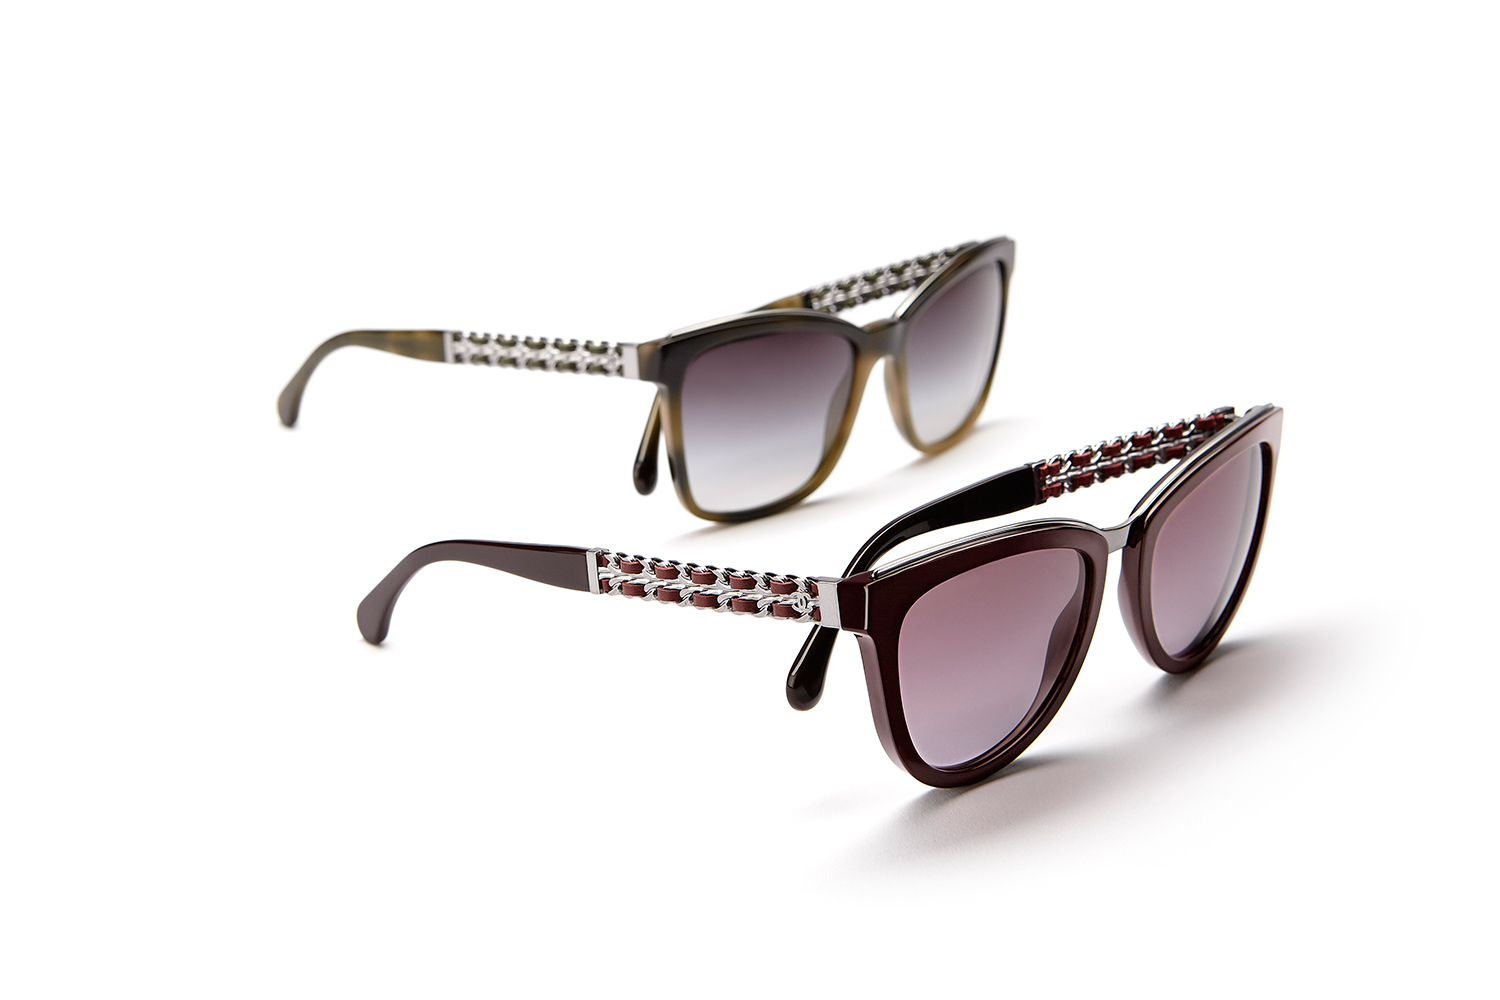 Chanel Coco Chain eyewear Fashionela